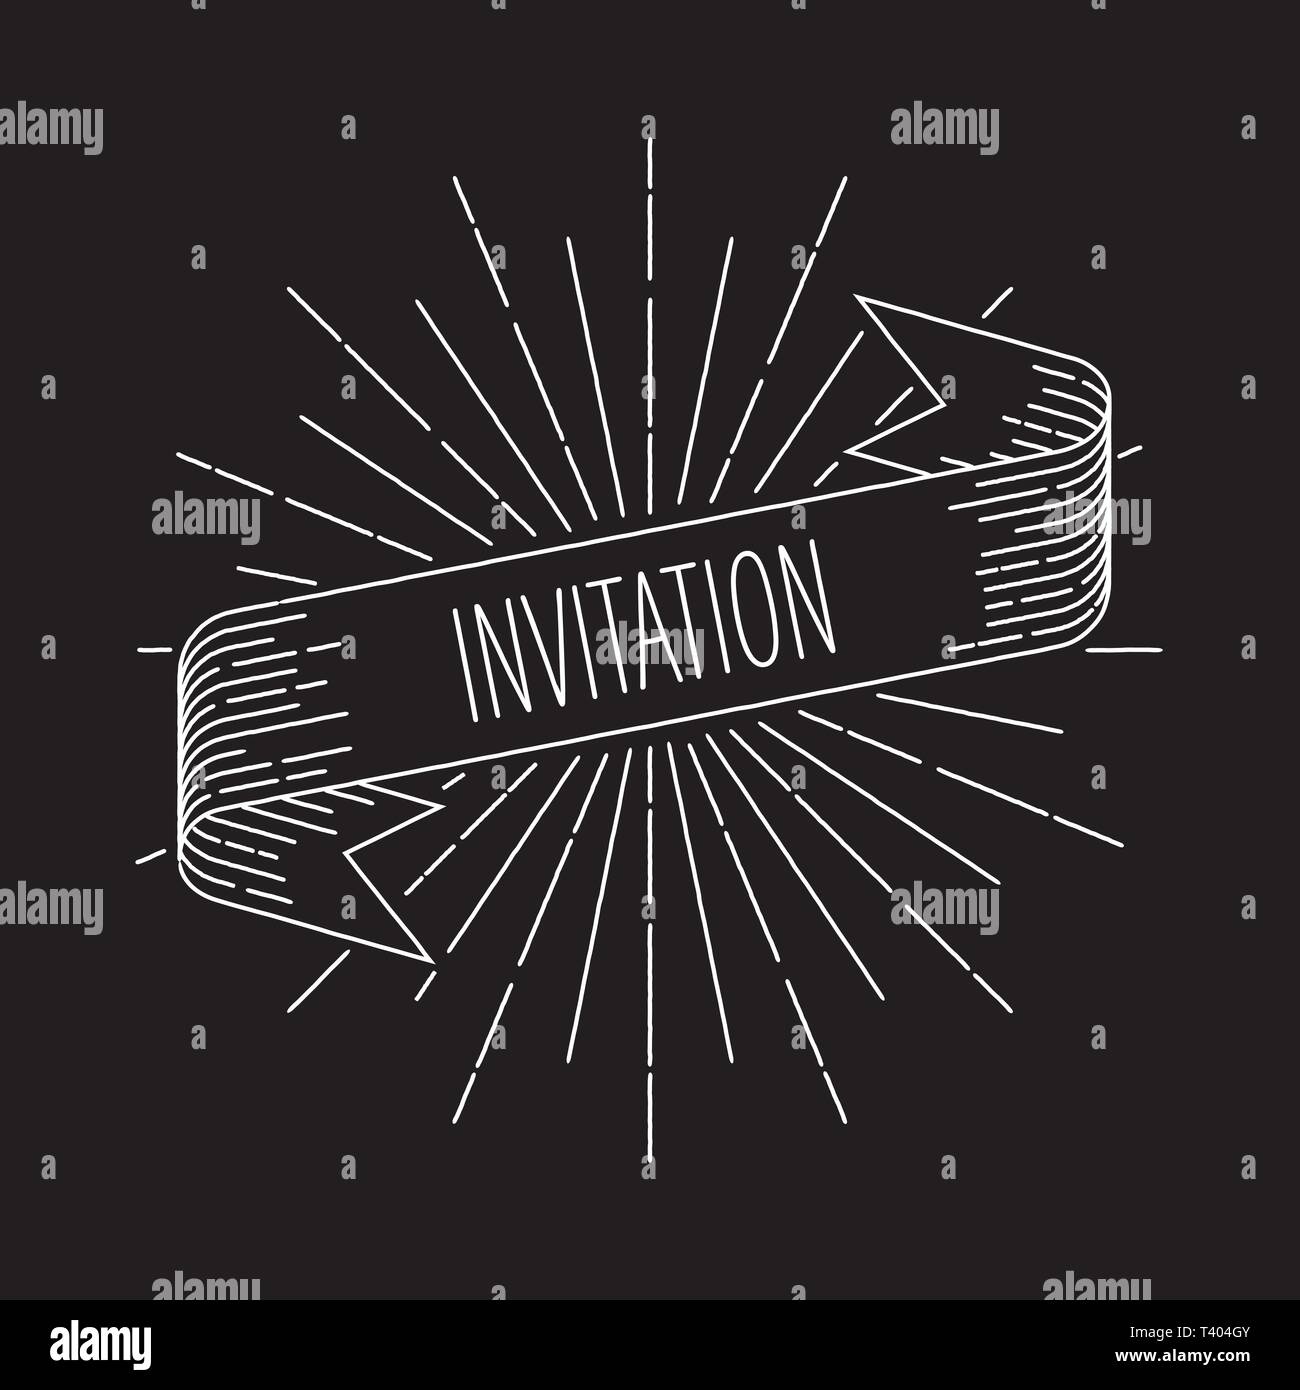 Invitation banner. Ribbon banner design element in vintage look with word invitation, engraving style graphic. Retro  Vector Illustration. - Stock Image